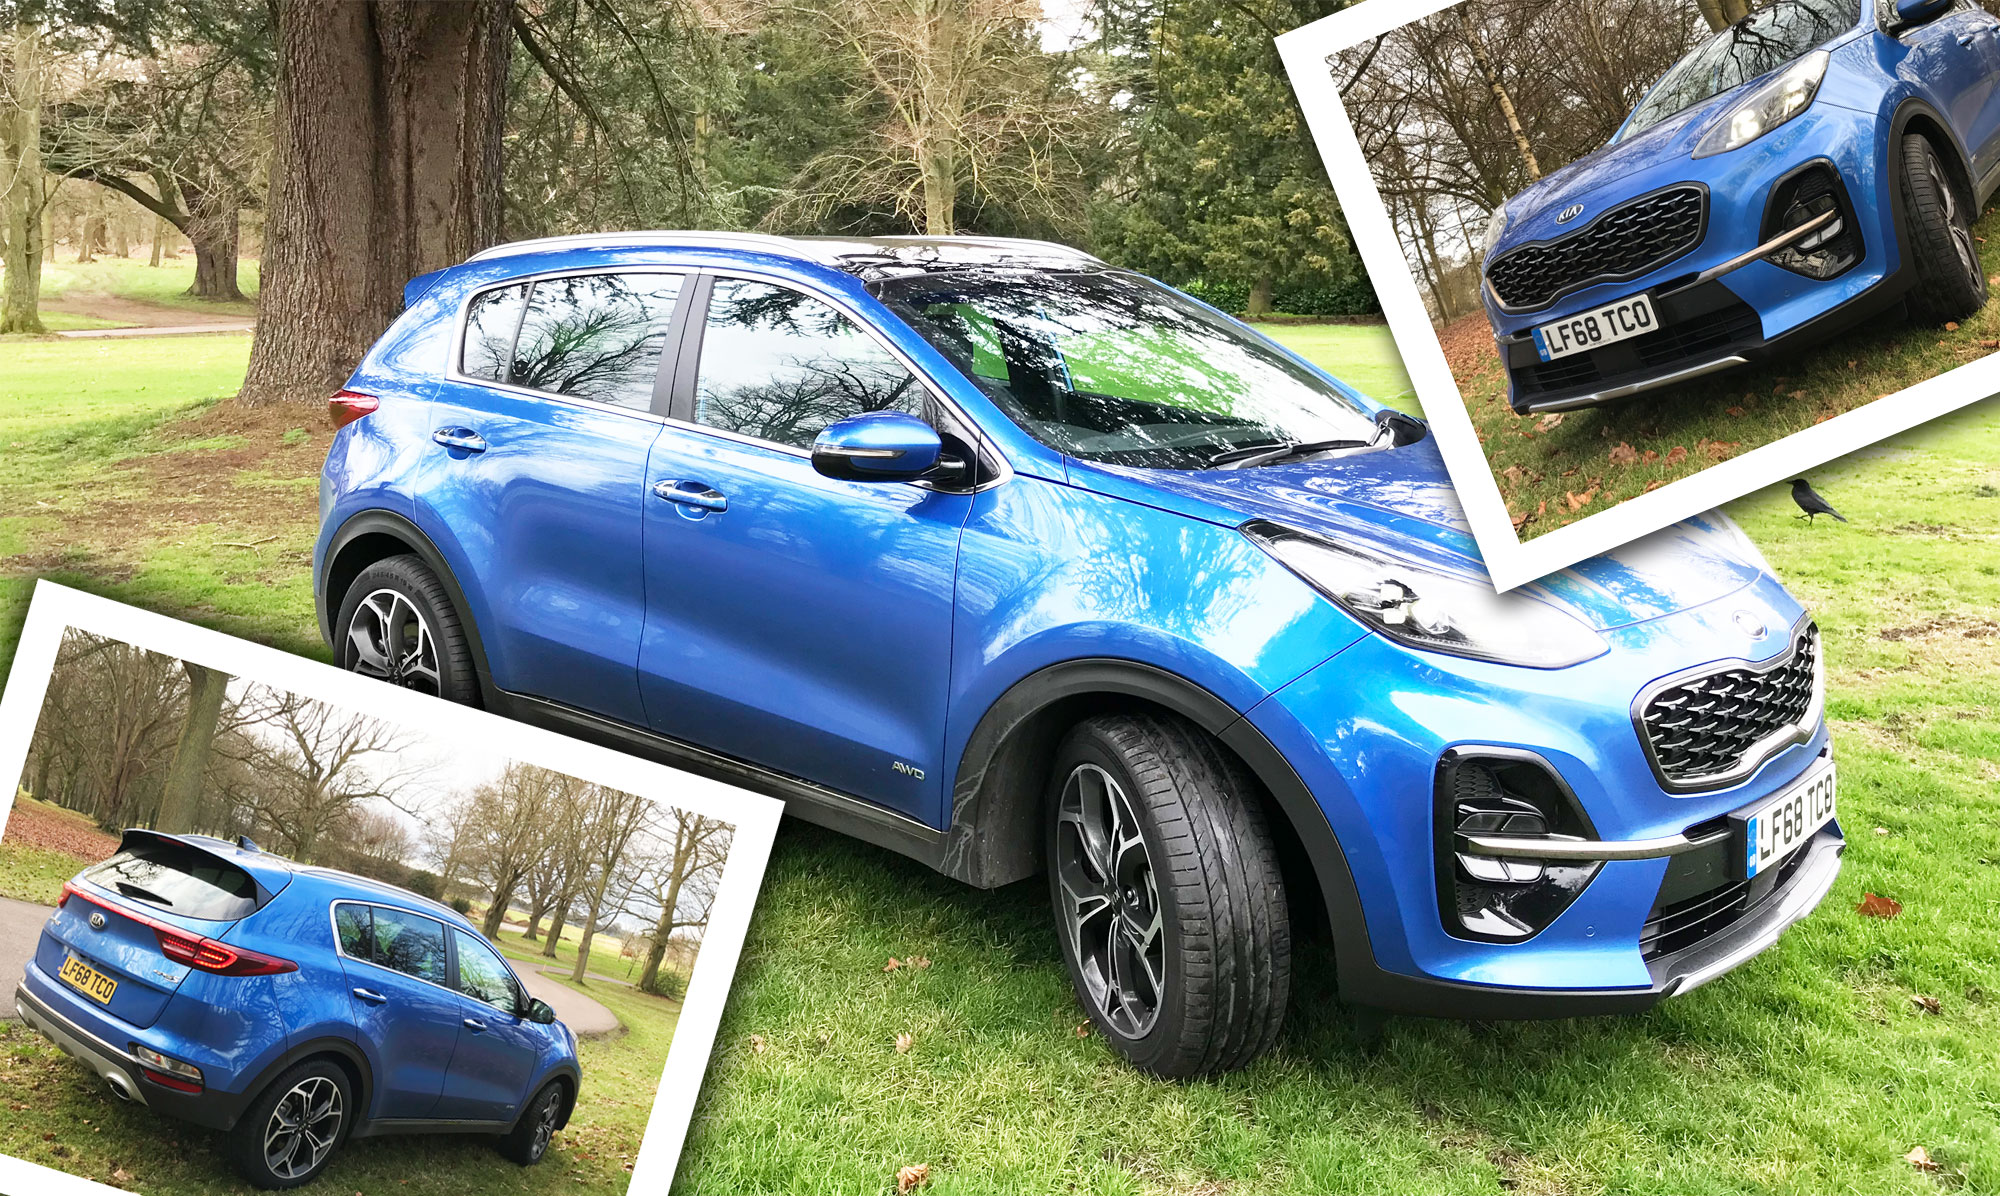 KIA SPORTAGE 'GT-LINE S' 2.0 CRDi 48V 8-speed auto ISG AWD review by Gina Baksa